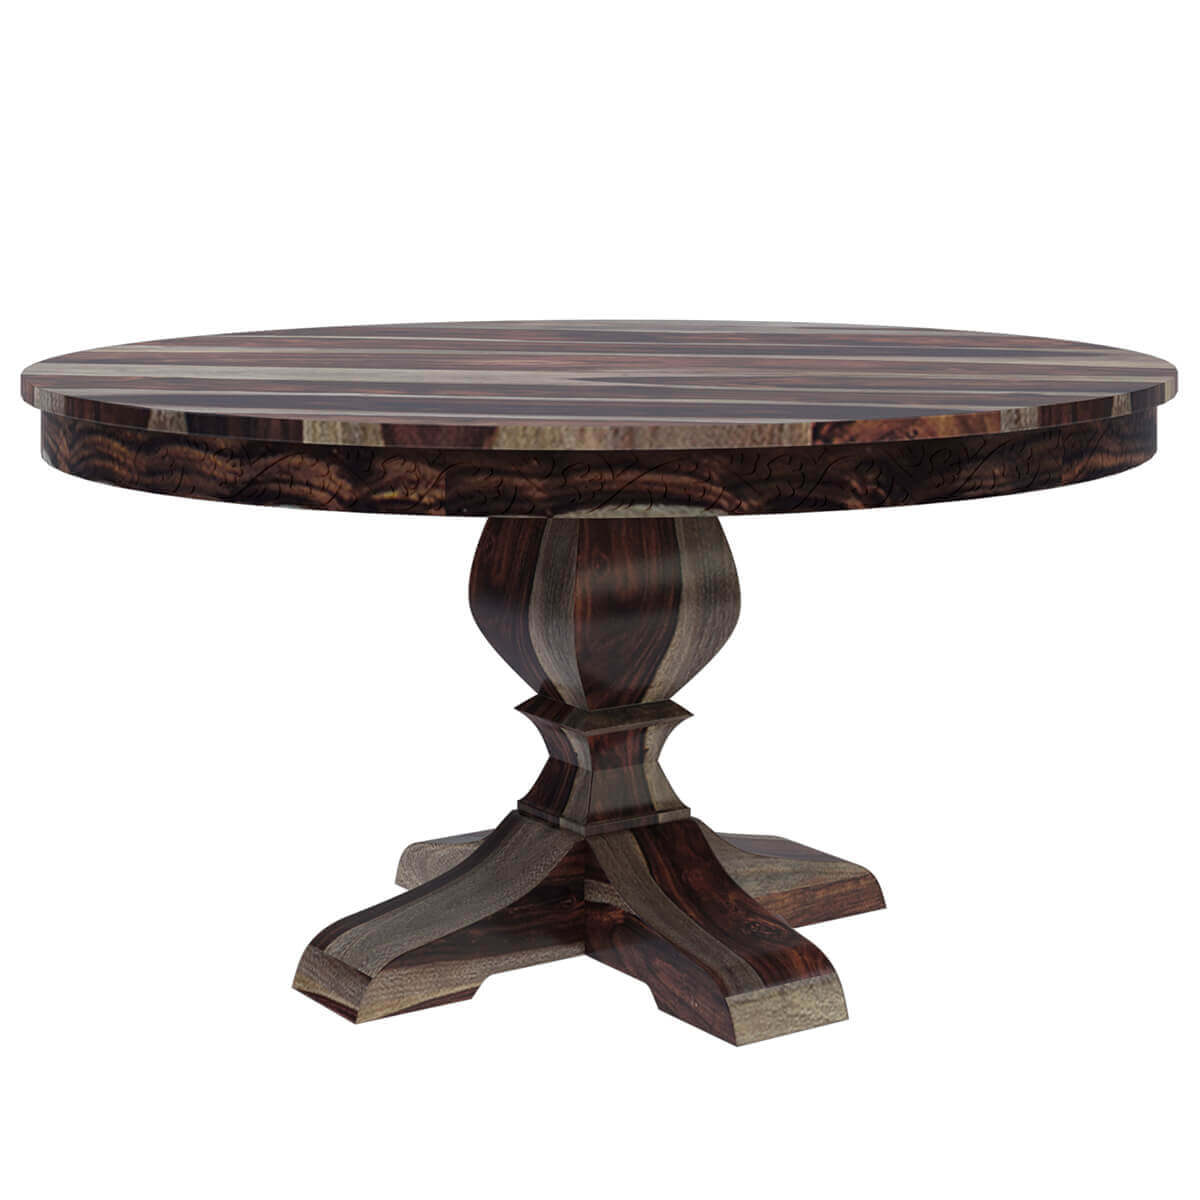 Hosford Handcrafted Solid Wood 60 Round Pedestal Dining Table